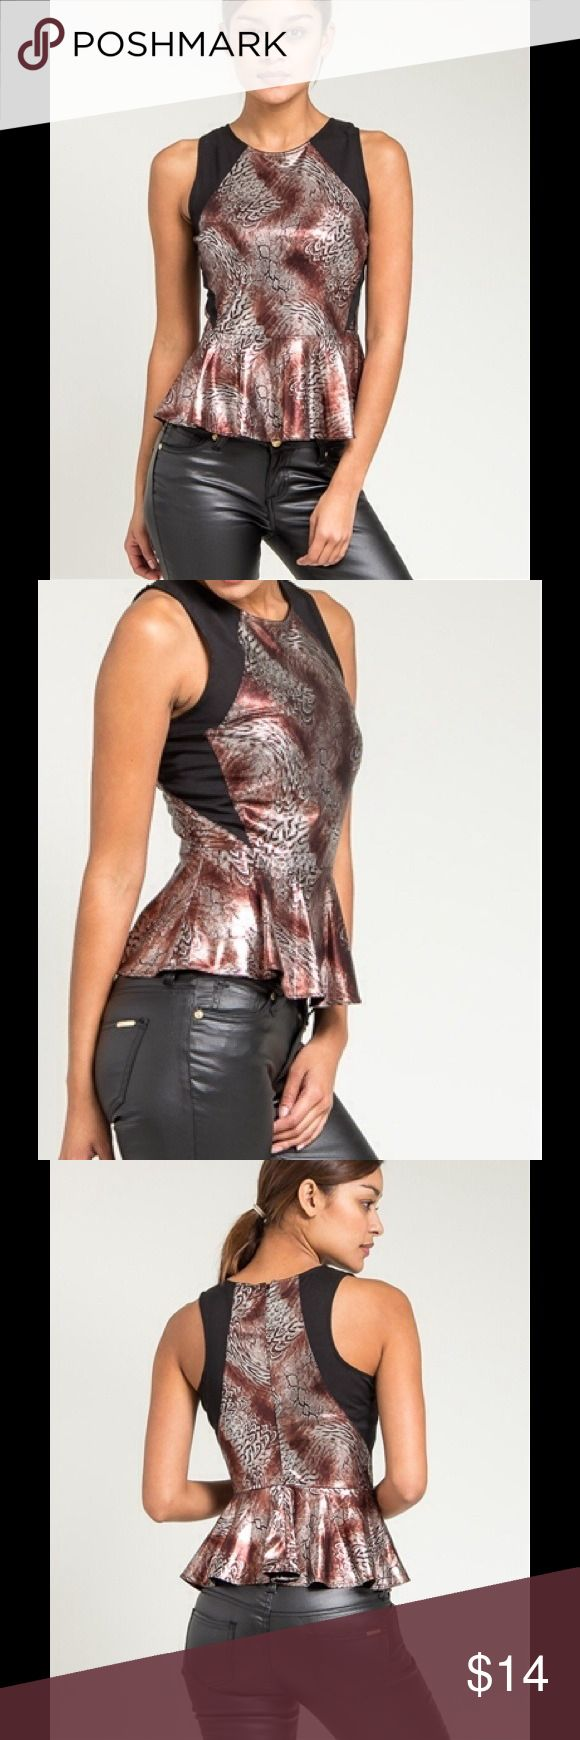 Copper Metallic Peplum Top The super flattering peplum silhouette streamlines this feminine metallic copper print top.  Features black sides to further slim your figure and a back zipper.  Show off your wild side with some faux leather leggings and booties or dress up your office look with a pencil skirt and a crop jacket. Tops